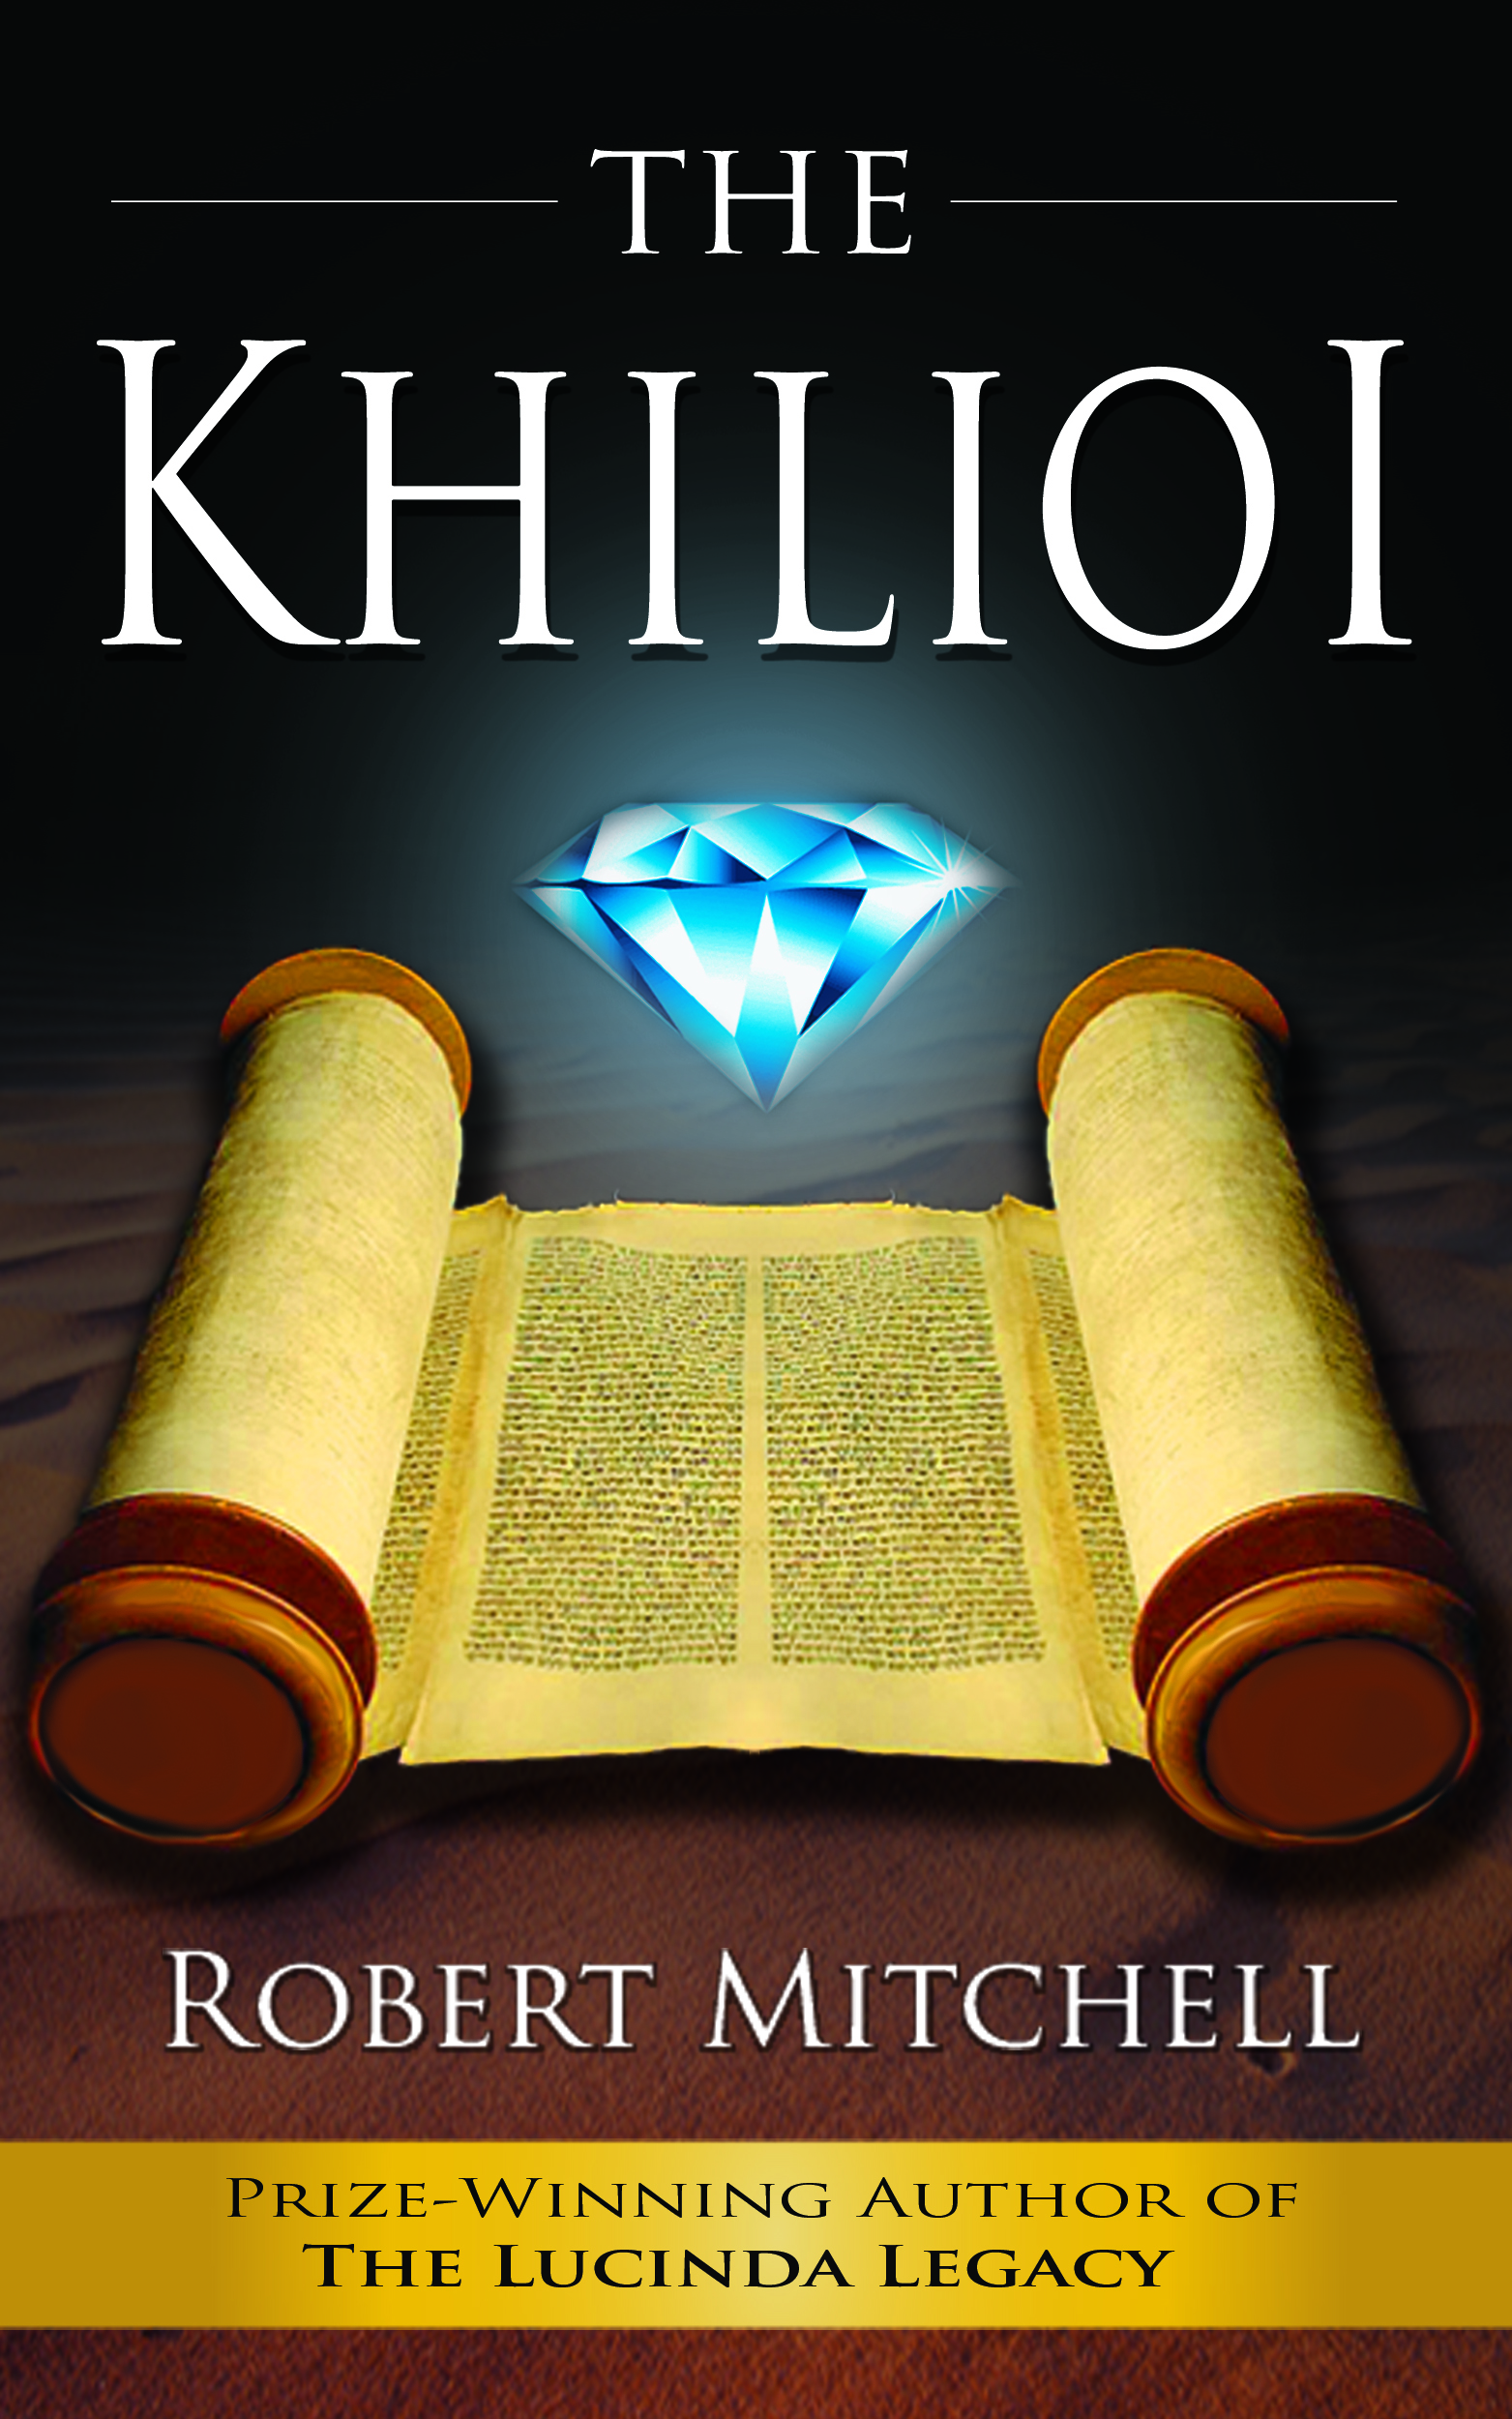 Book Cover Design by kowreck - Entry No. 96 in the Book Cover Design Contest The Khilioi Book Cover Design.